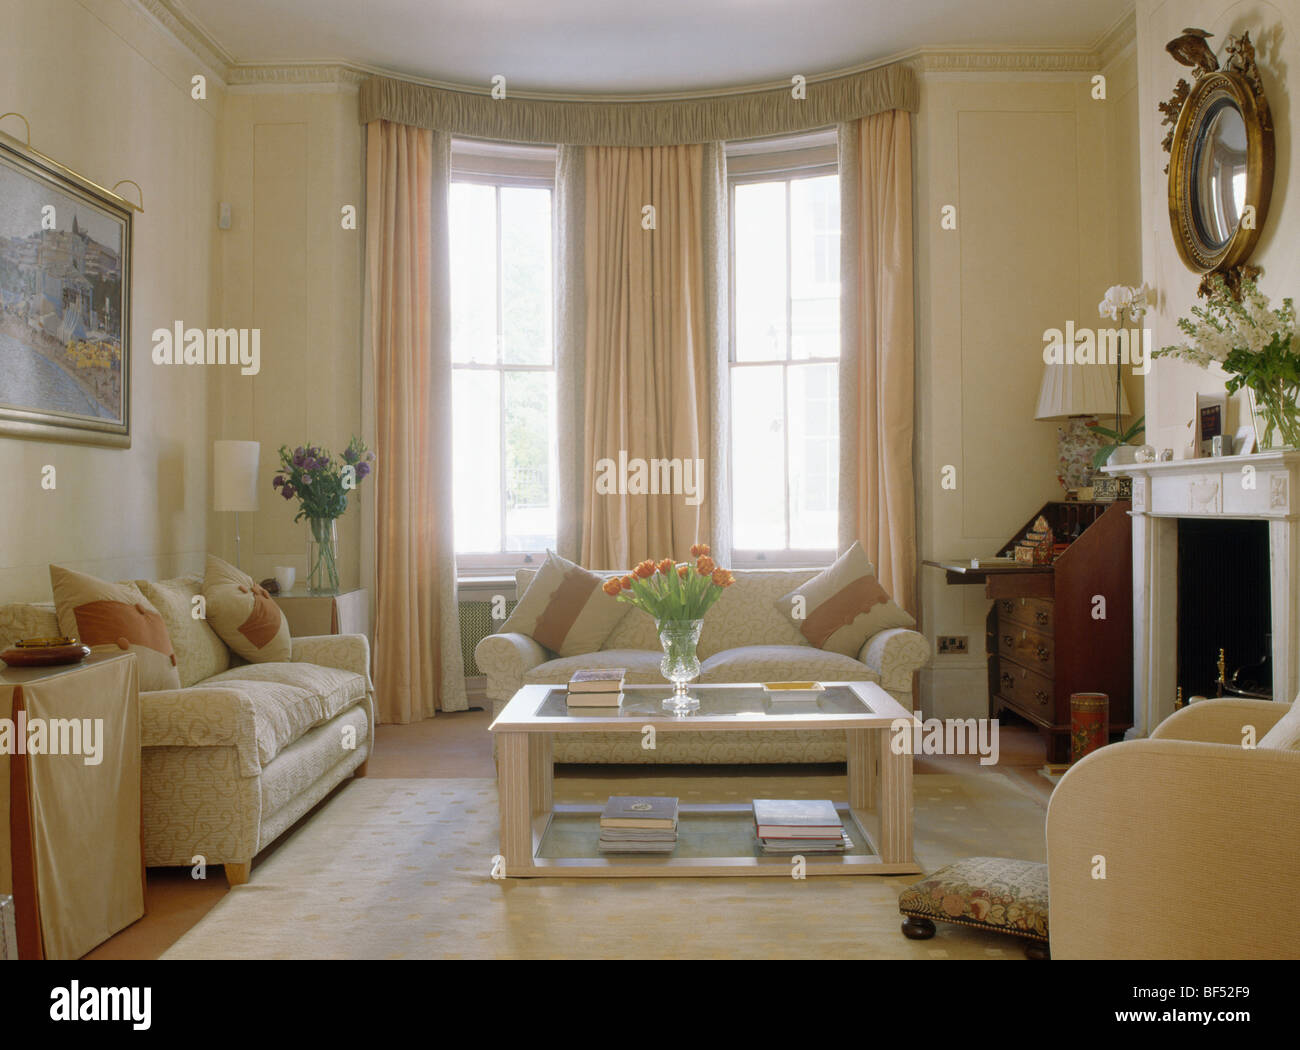 cream sofas and glass wood coffee table in traditional cream stock photo 26541965 alamy. Black Bedroom Furniture Sets. Home Design Ideas